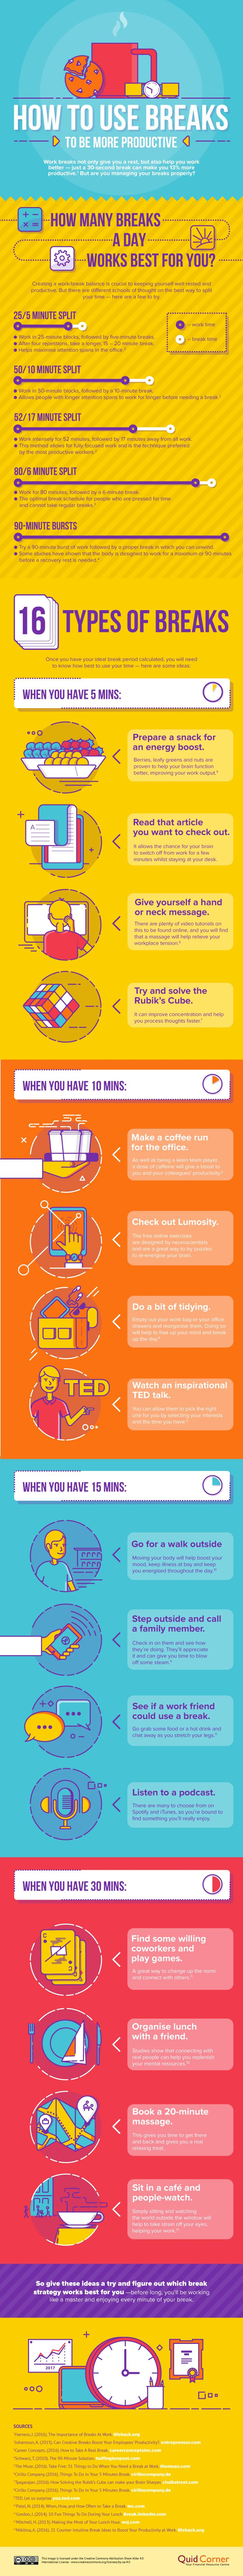 The Best Ways To Use Breaks To Be More Productive Infographic